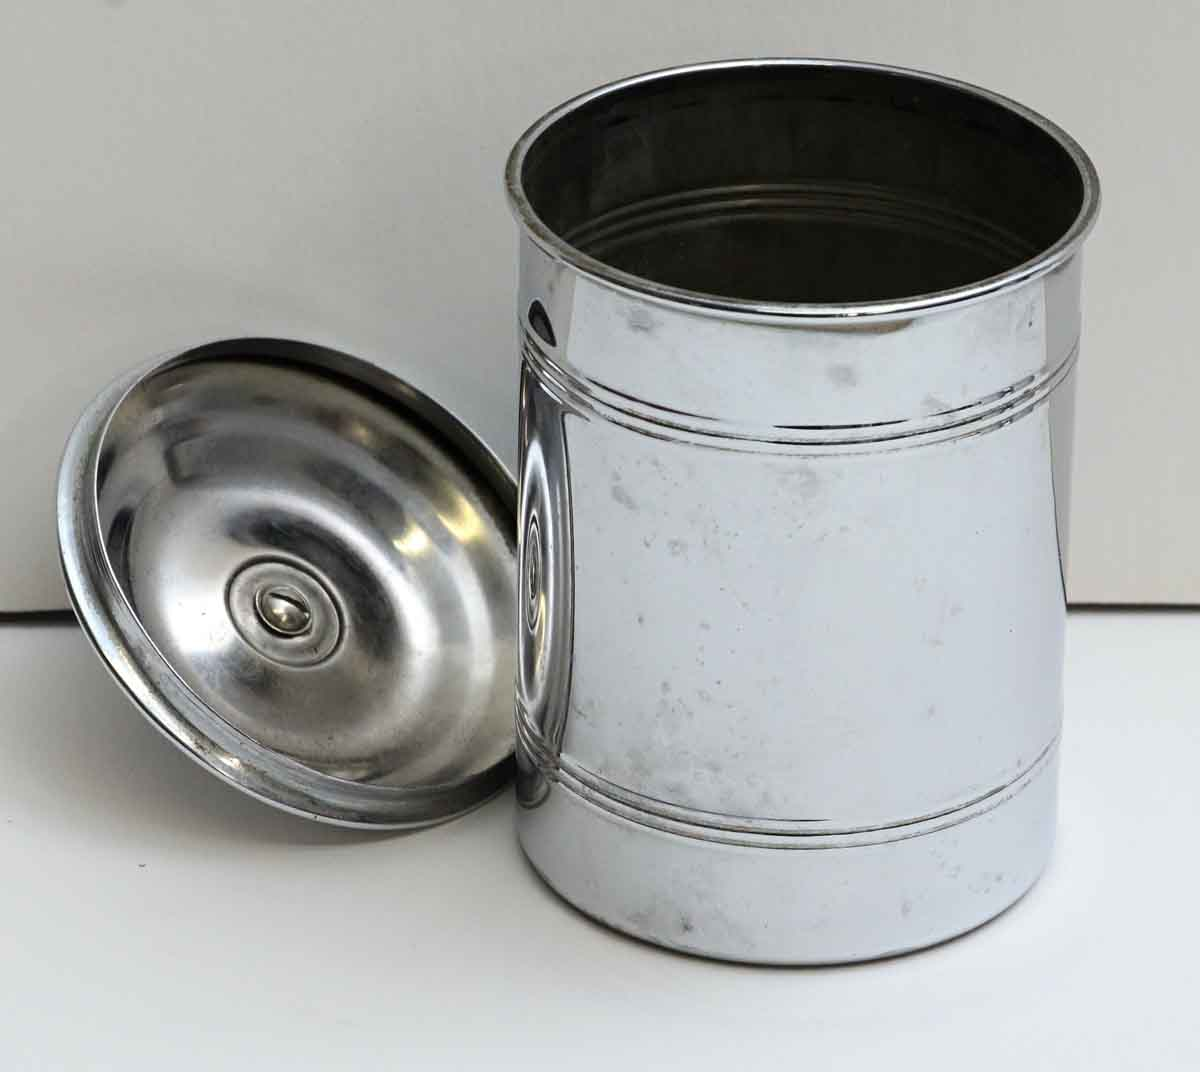 French Kitchen Canisters: Set Of Vintage French Kitchen Canisters